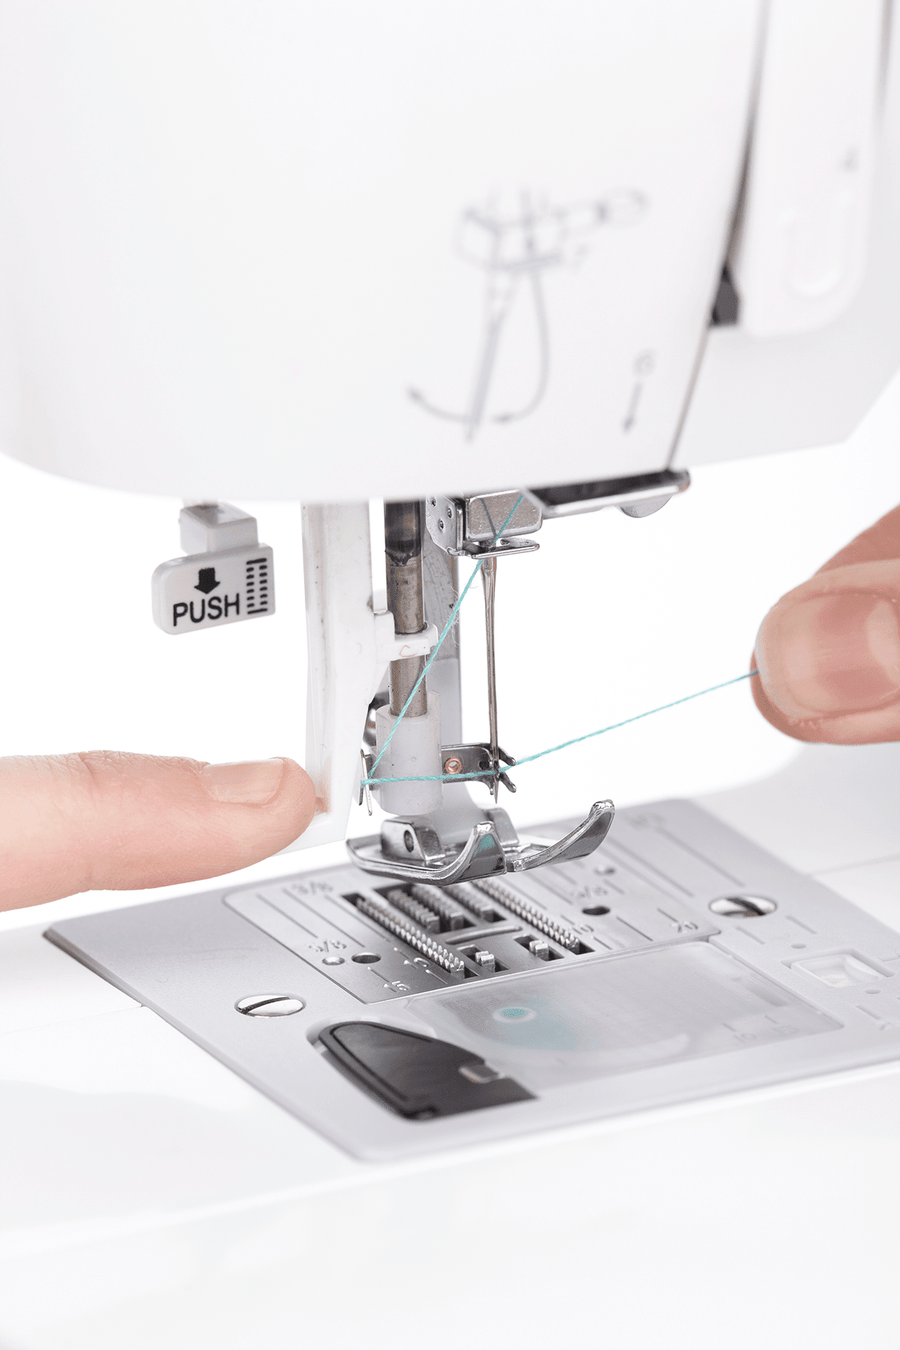 Needle threader of Fashion Mate™ 3337 sewing machine. Fashion Mate™ 3337 衣車的車針穿線器